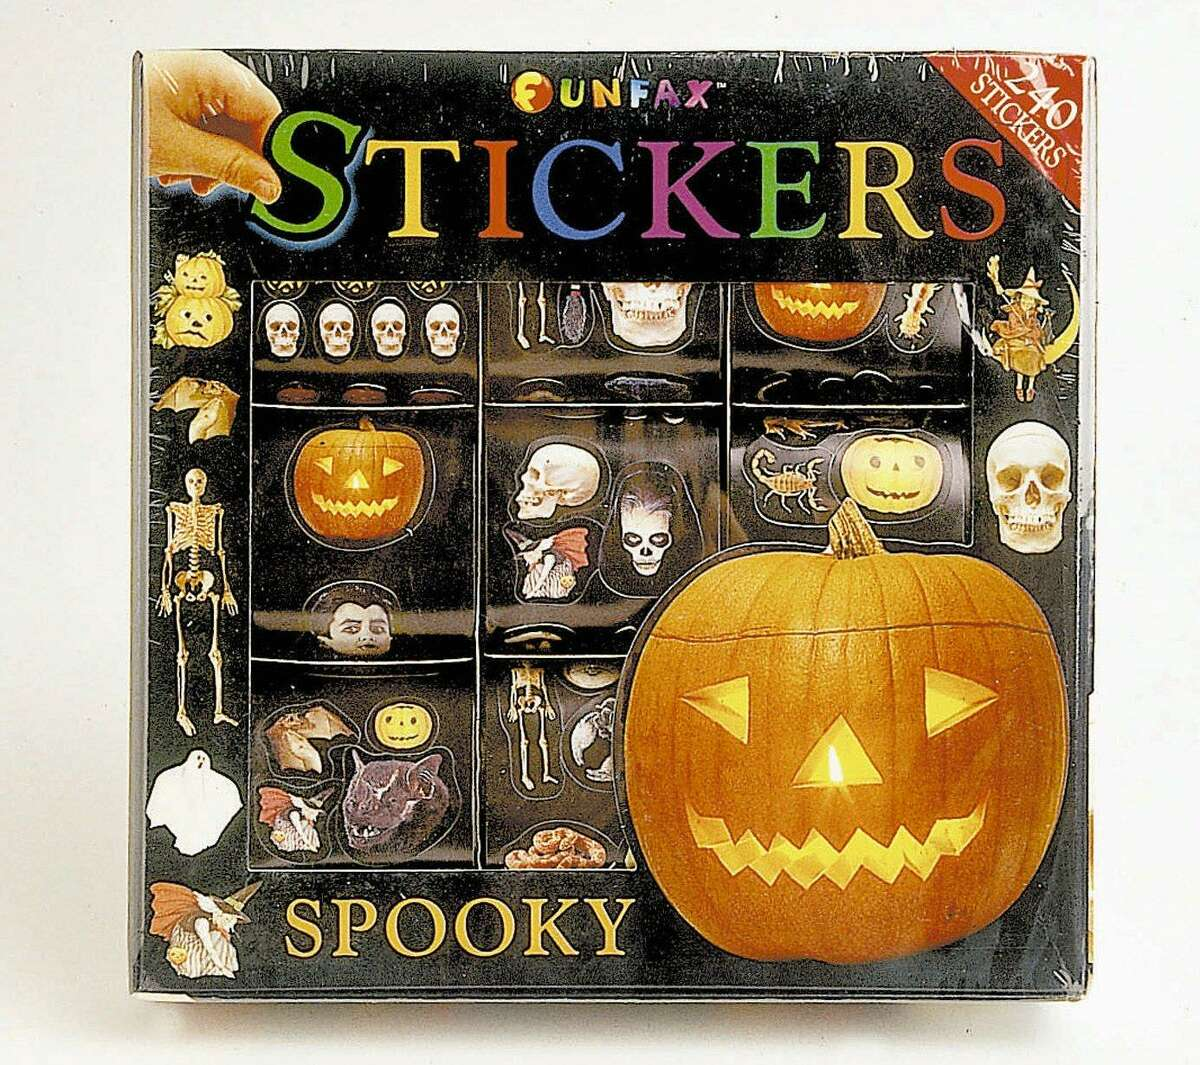 The Connecticut state dental association is recommending that homeowners hand out non-candy items, such as stickers, this Halloween.